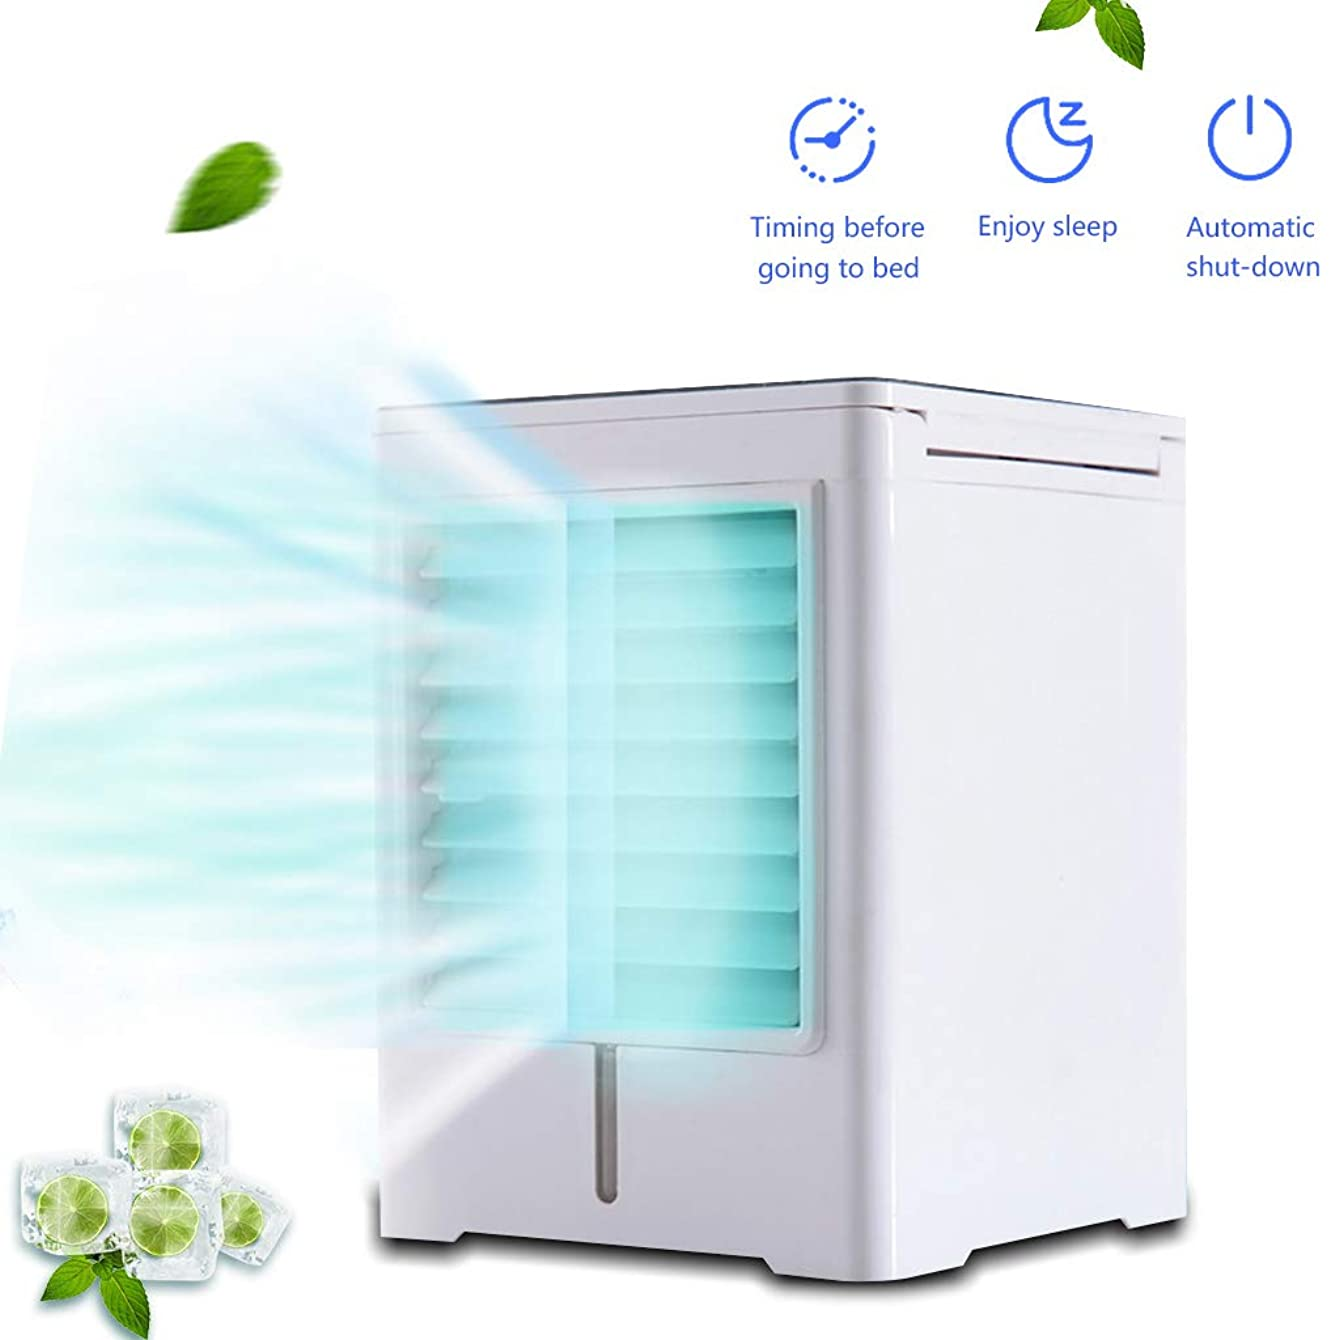 K-Flame Mini Air Conditioner Portable Cooler USB Fan Mobile 3 in 1 Humidifier 3 Speeds Cooler Purifier for Office Home Travel